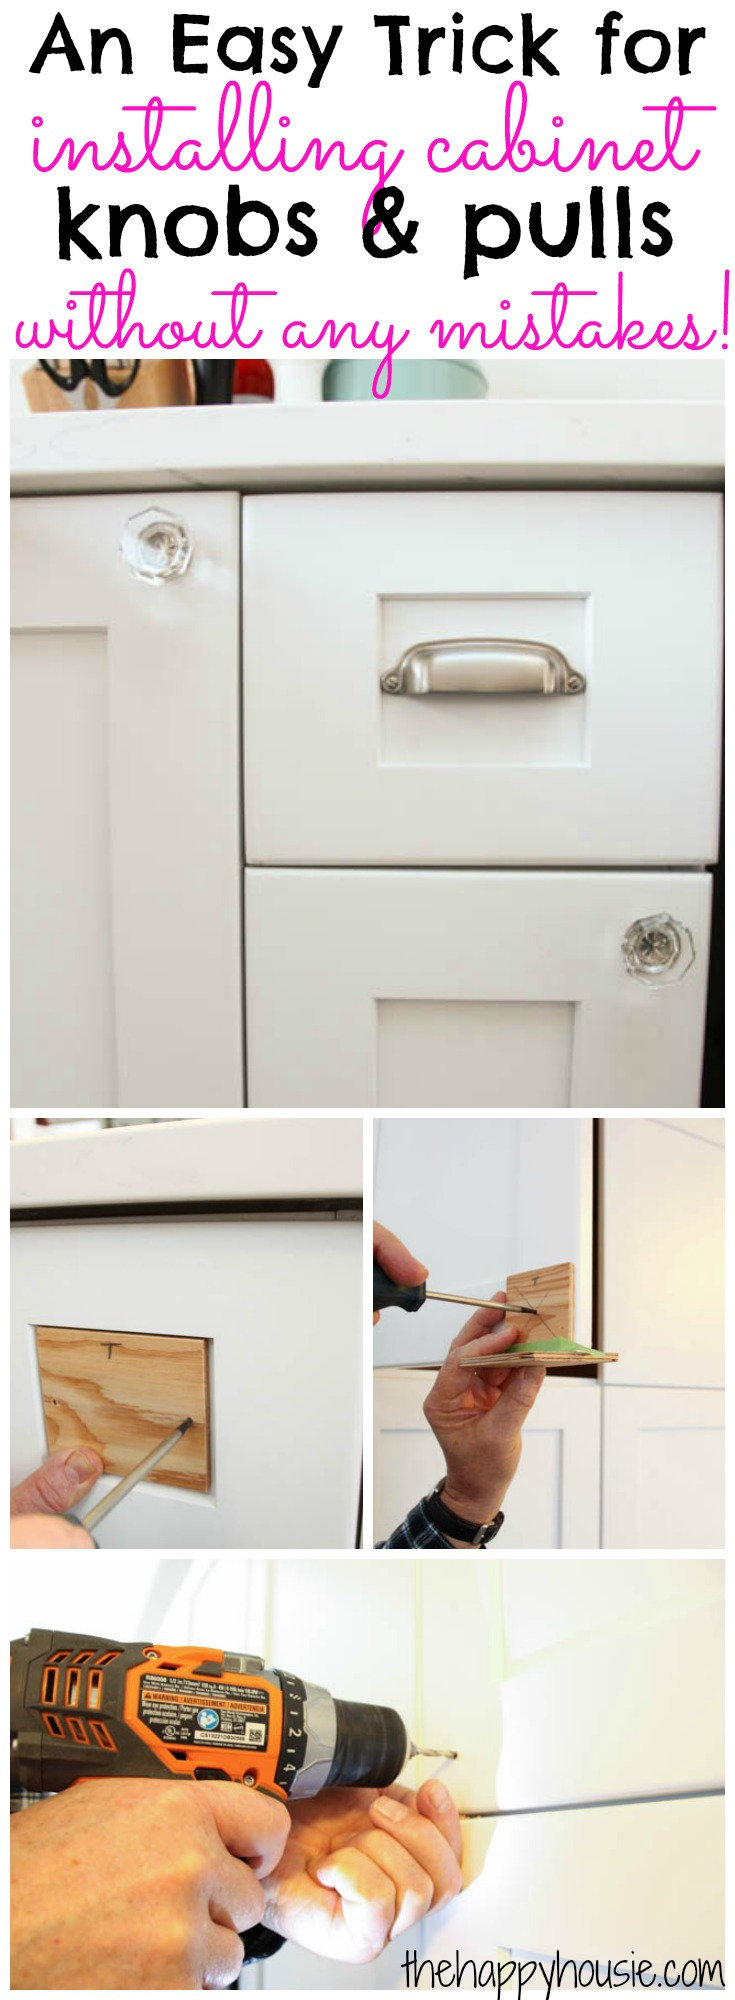 Where to Put Knobs On Cabinet Doors Lovely How to Install Cabinet Knobs with A Template A Trick for